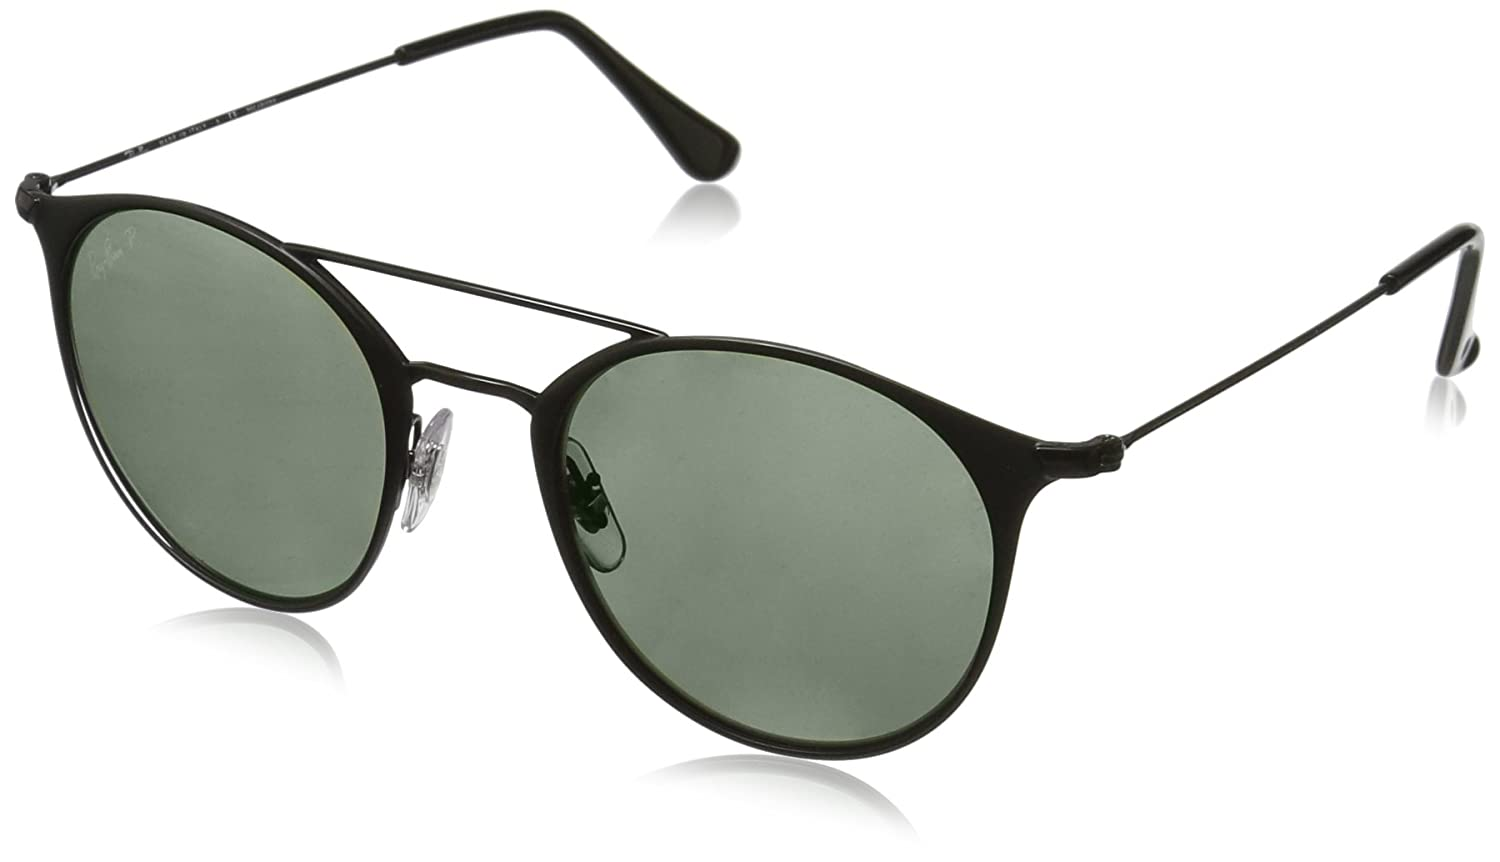 4e324ec0228 Amazon.com  Ray-Ban Steel Unisex Polarized Round Sunglasses